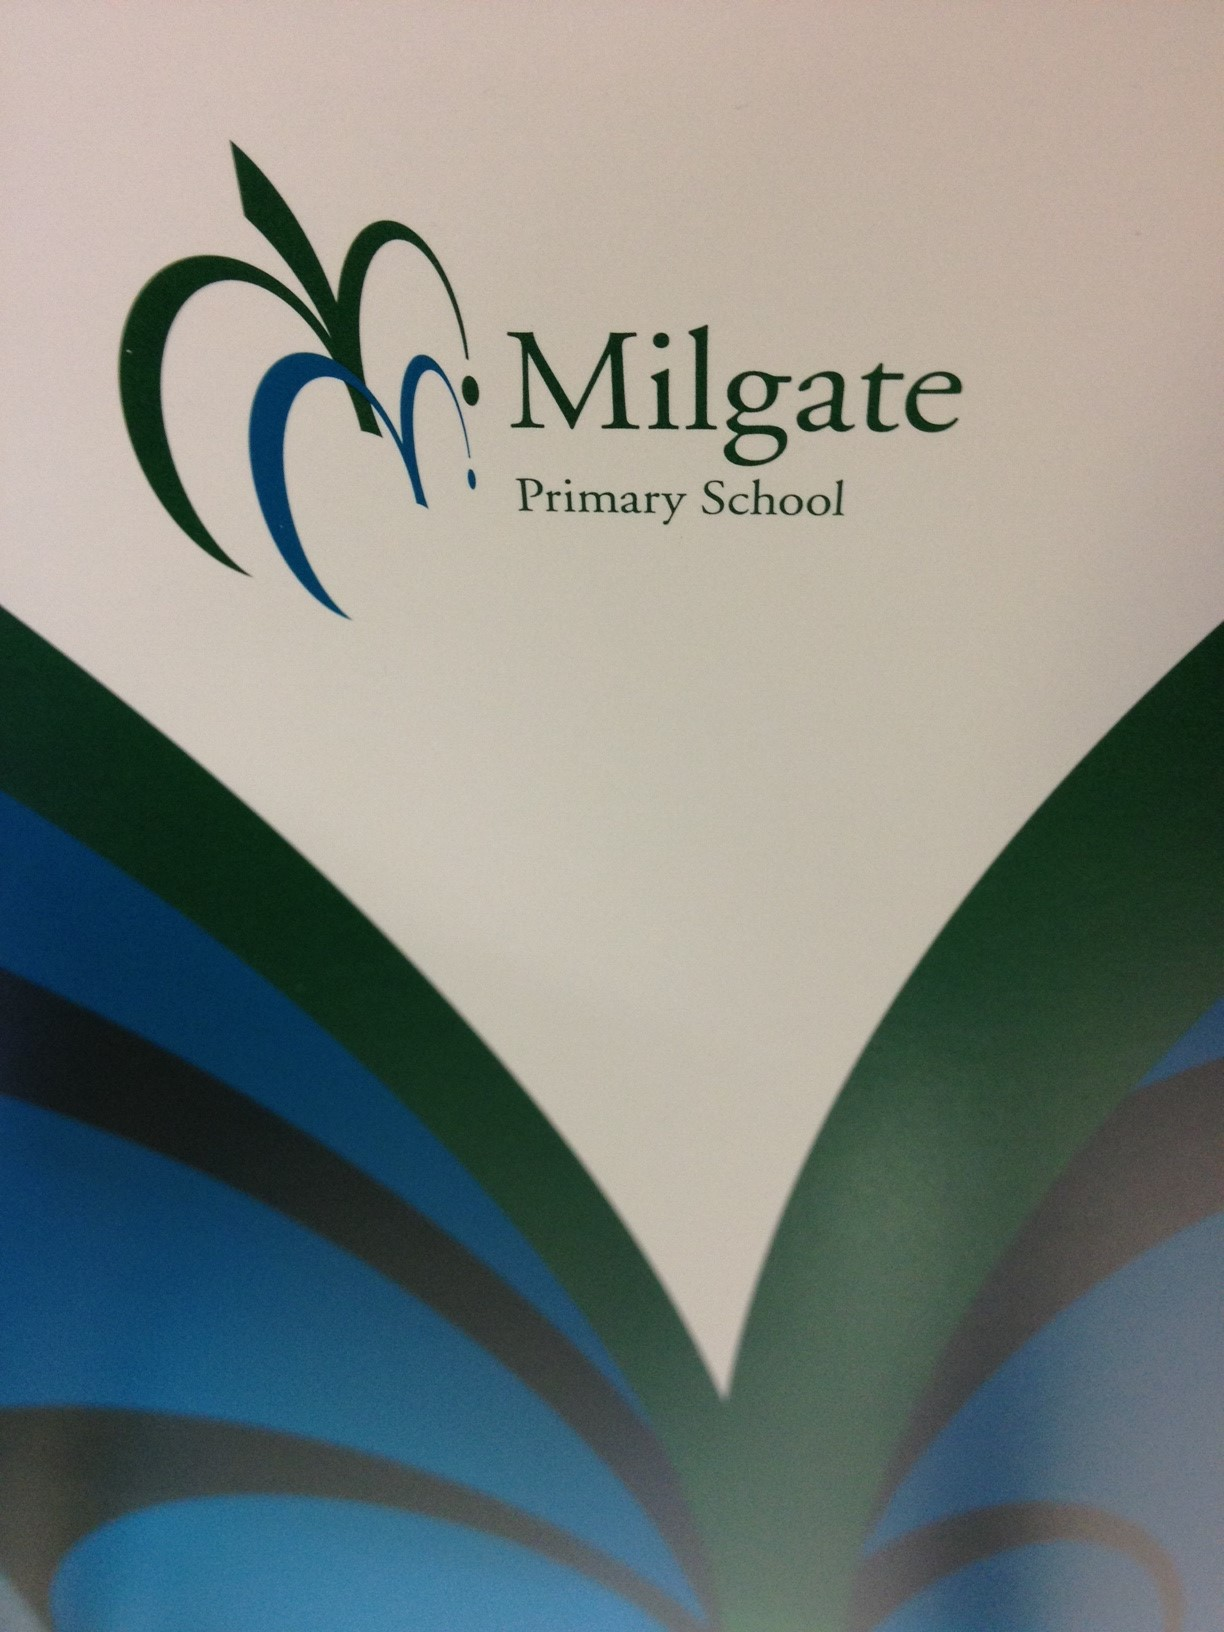 Milgate Primary School | East Doncaster | IB World School